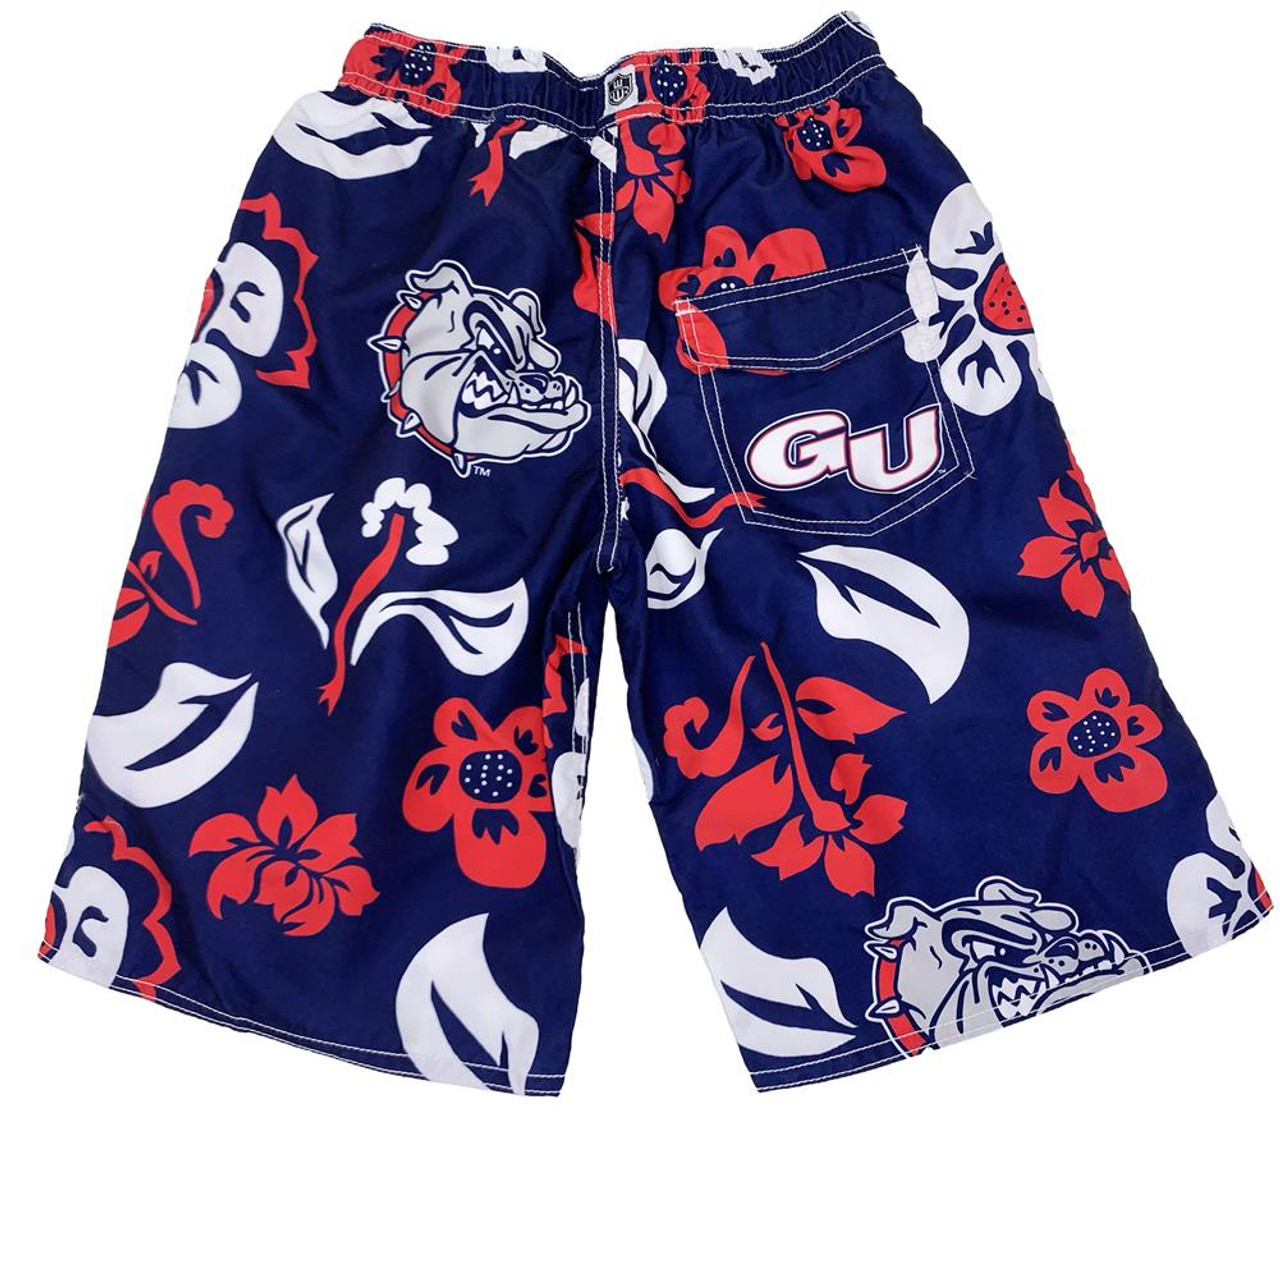 Youth Villanova University Swim Trunks Boys Floral Swim Shorts